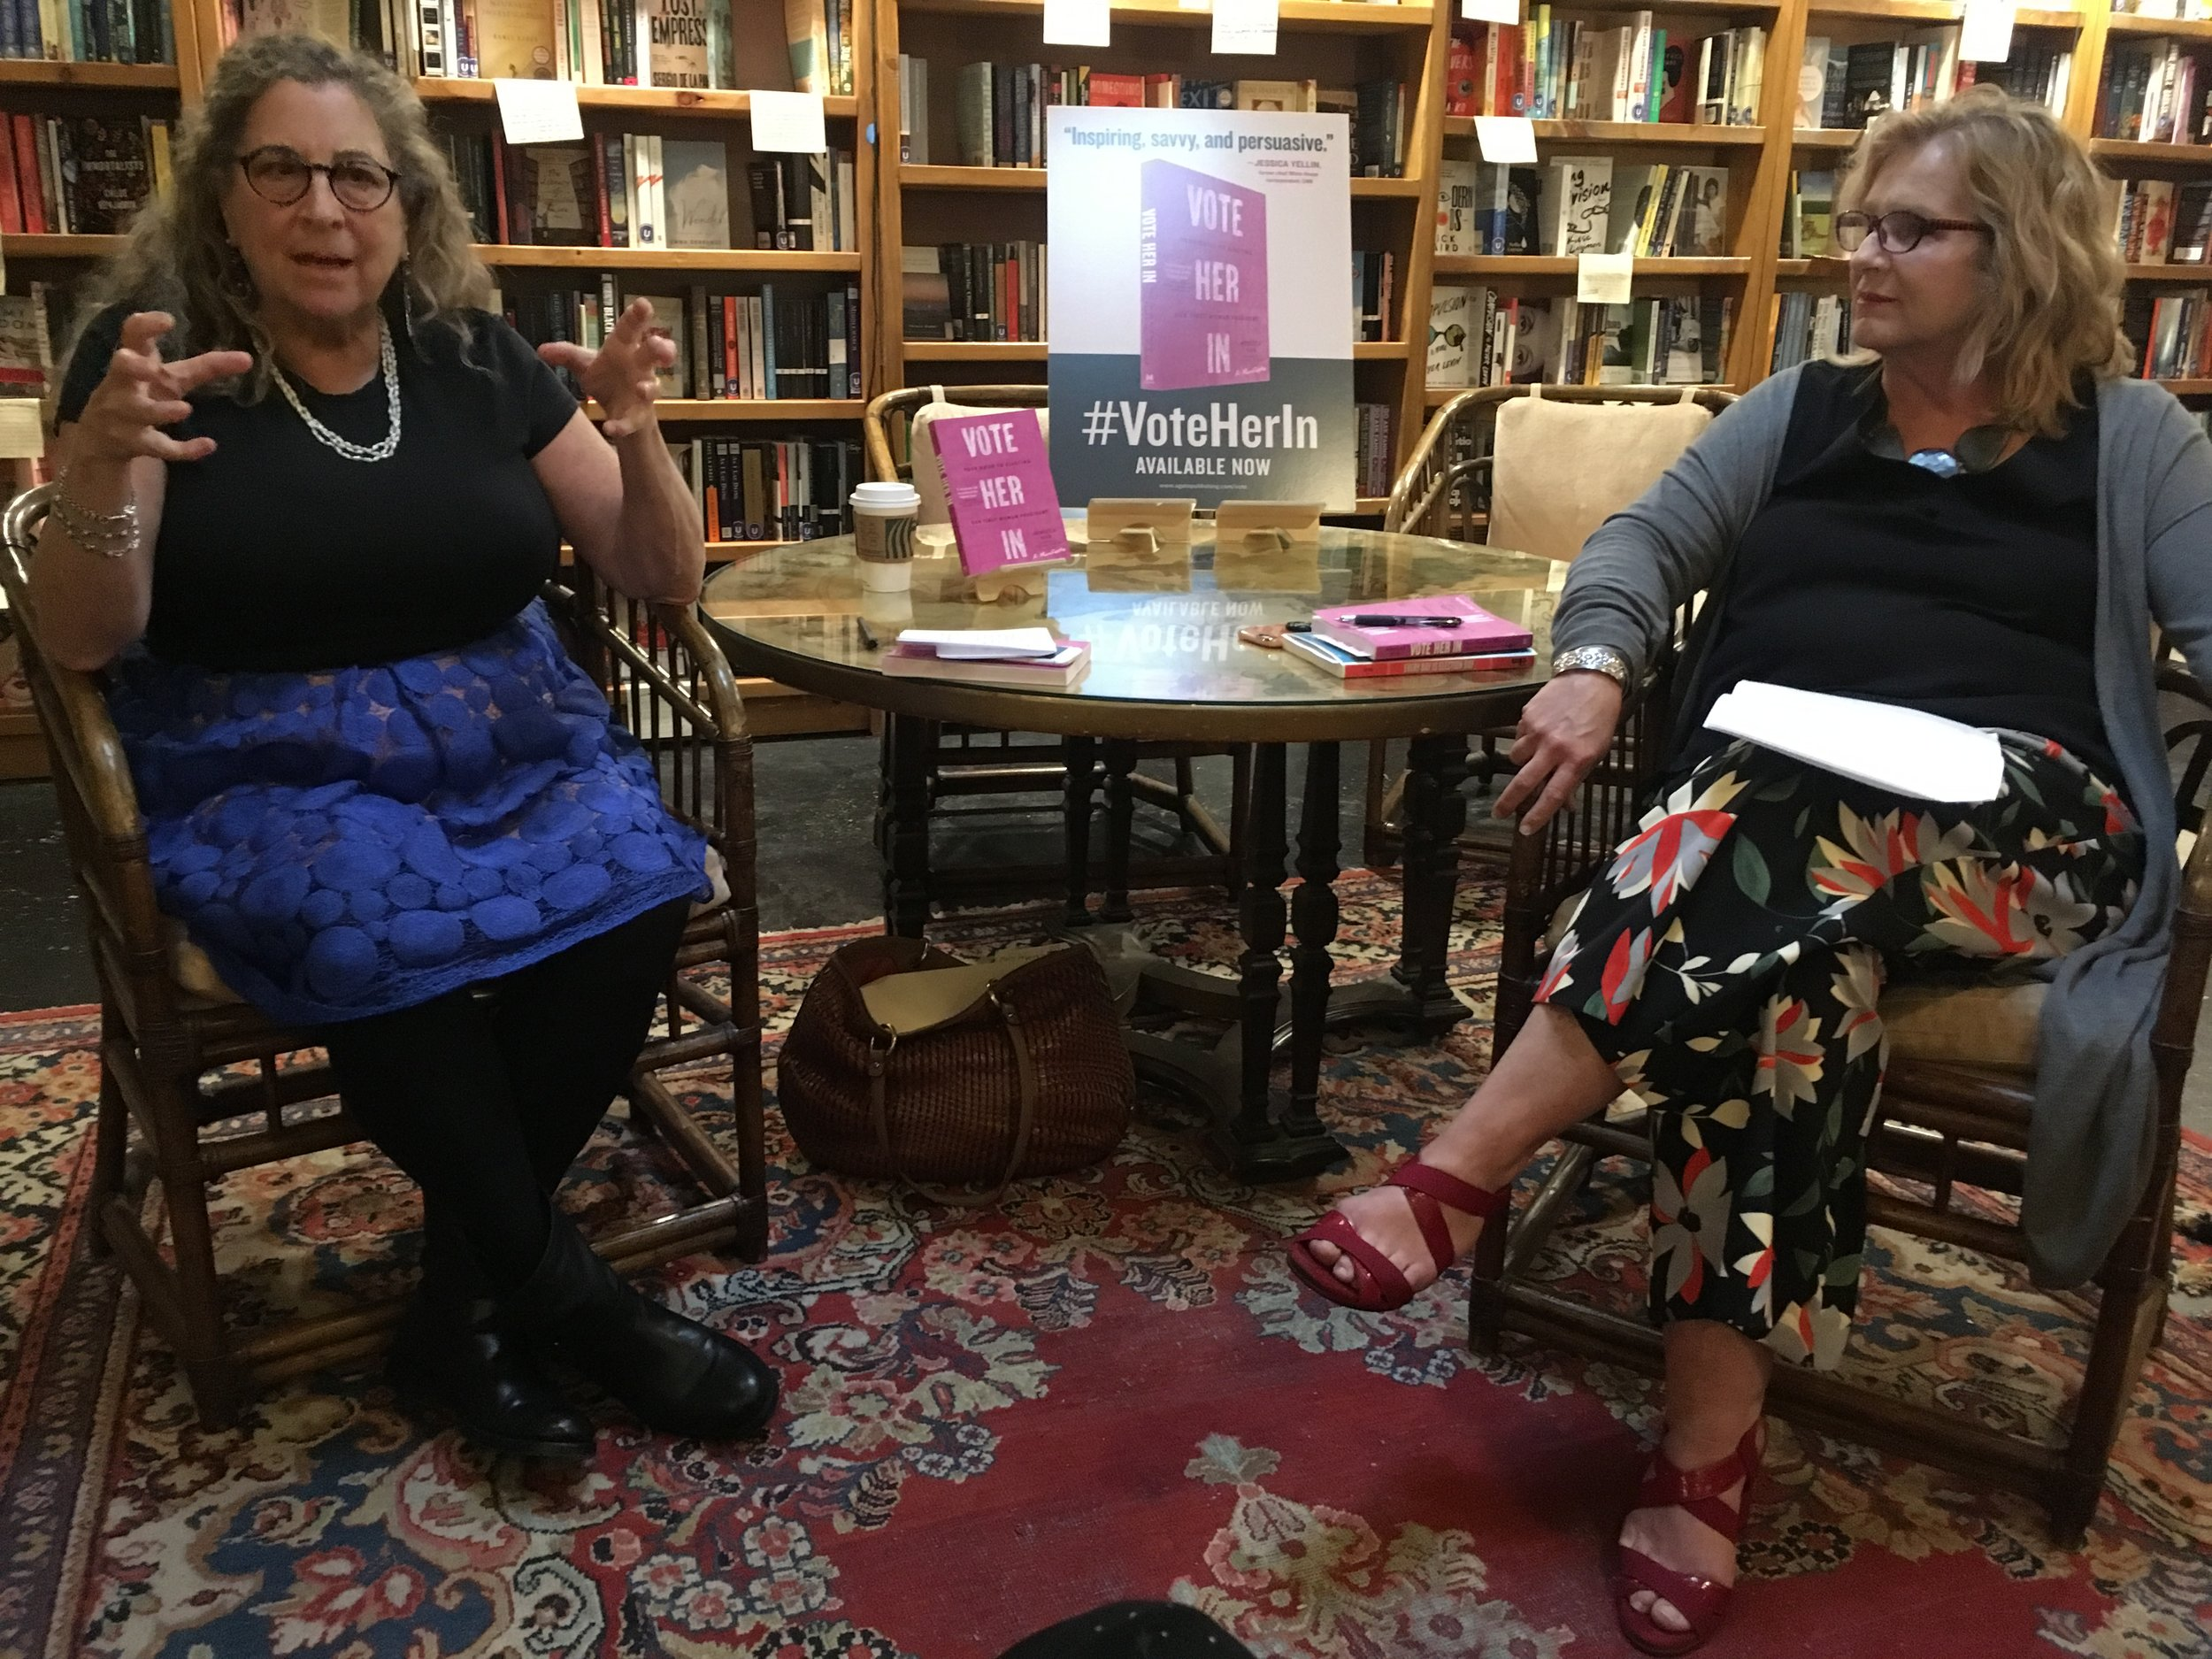 Rebecca Sive and Michele Weldon discuss Rebecca's book Vote Her In at Bookends & Beginnings.